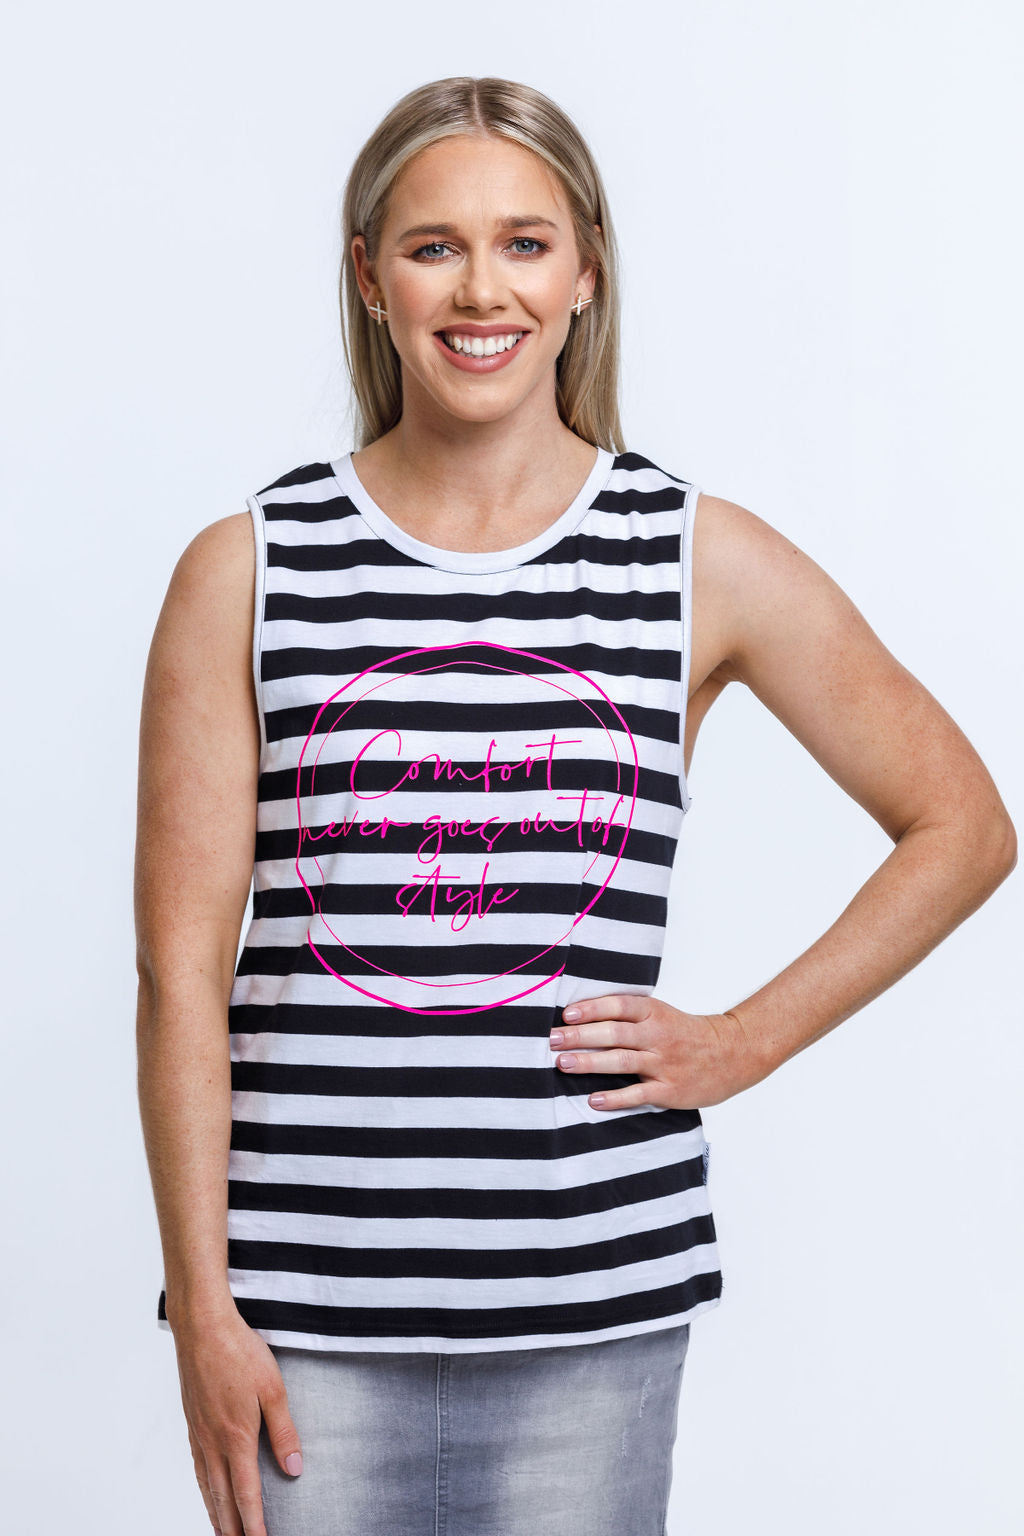 Taylor Singlet- Black & White Stripes